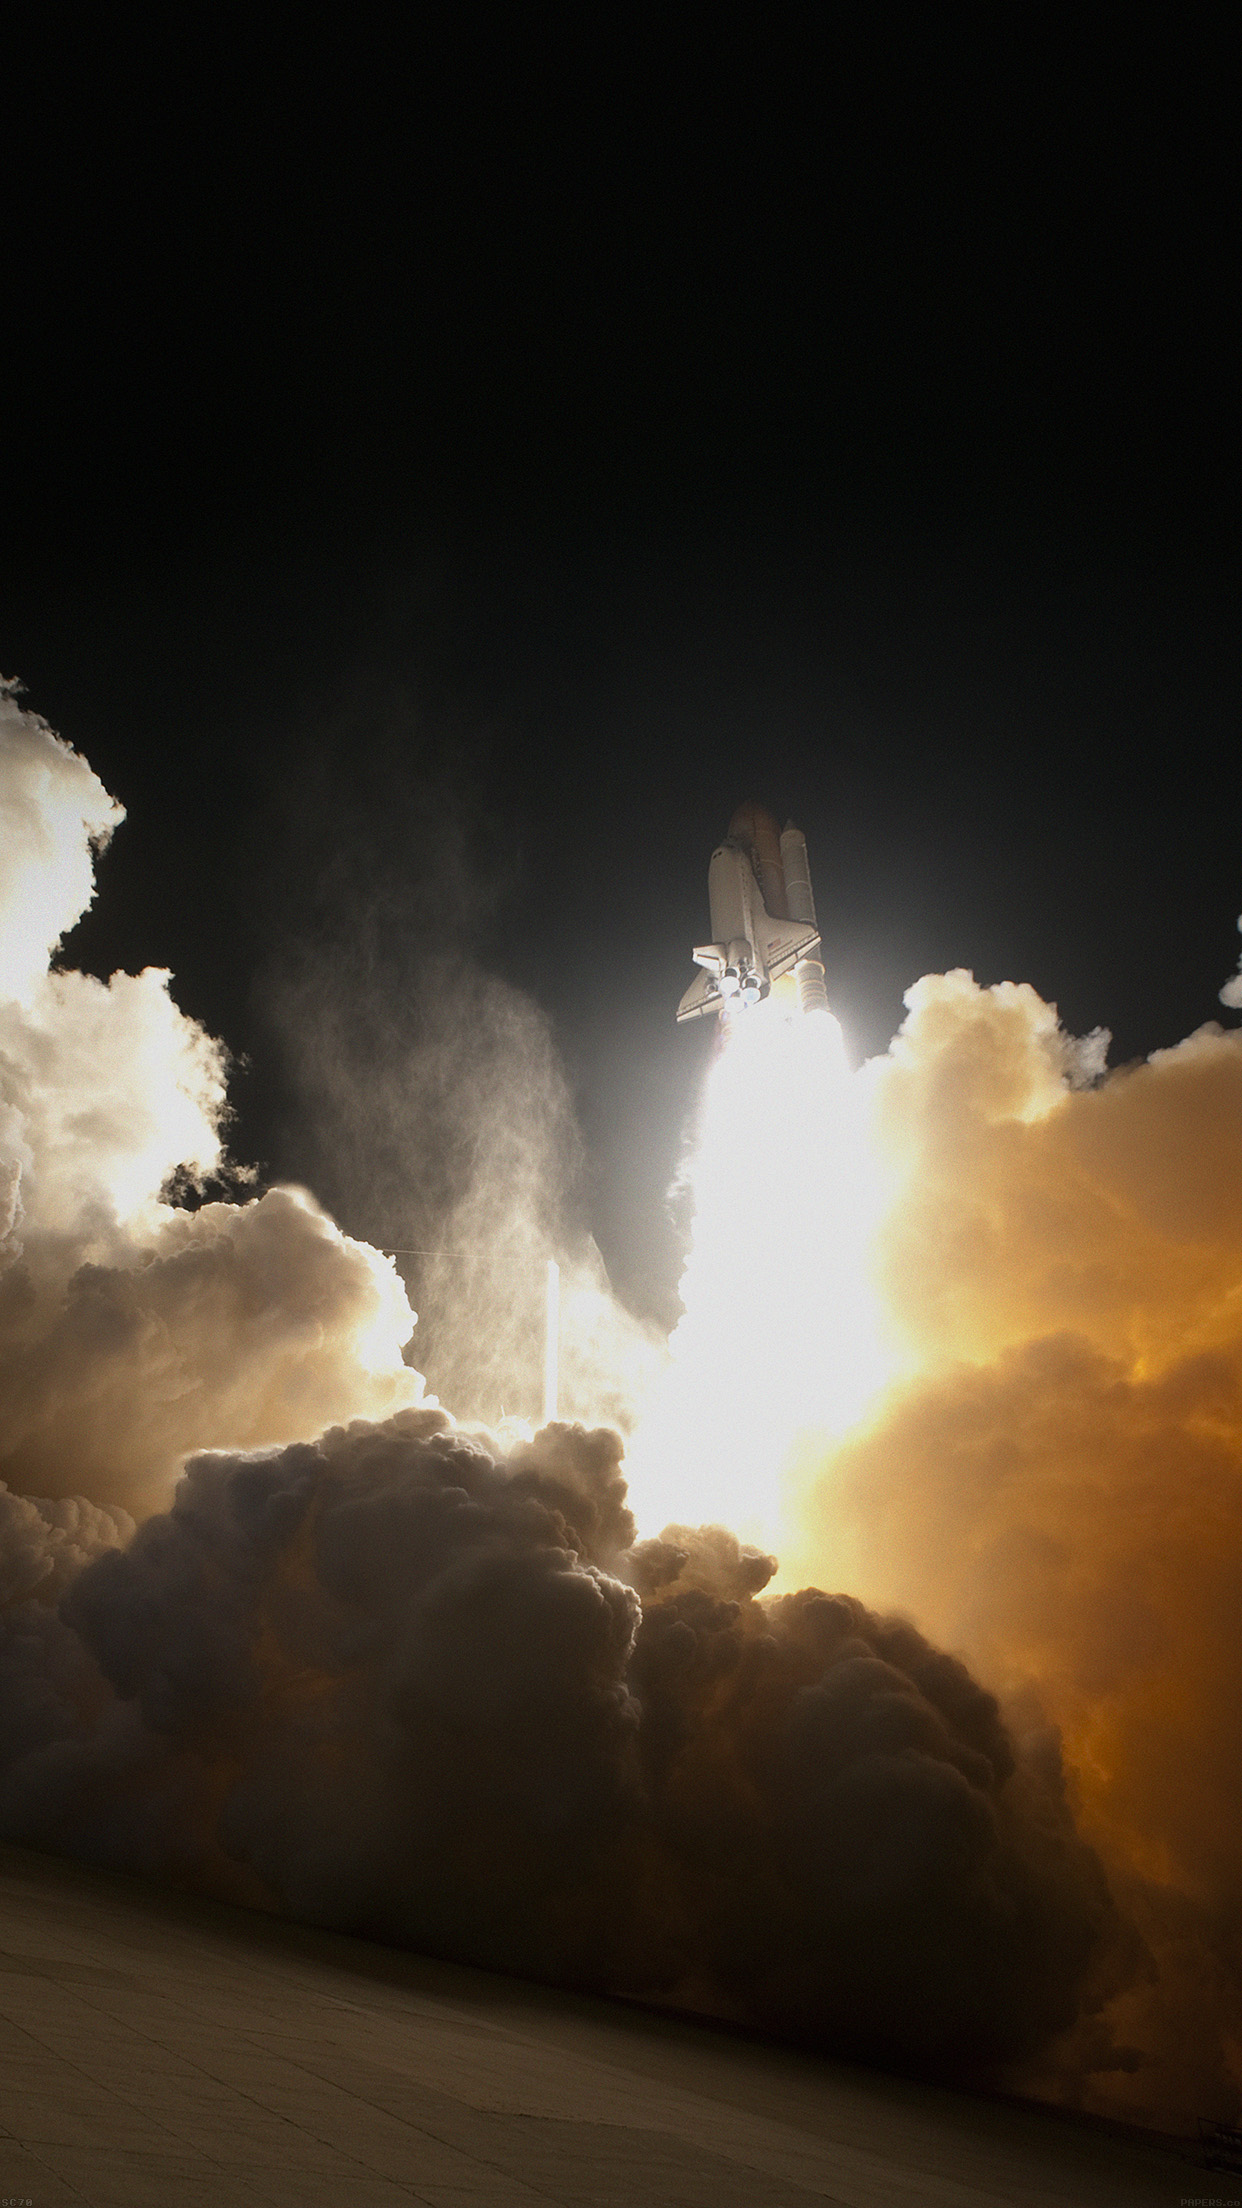 NASA Space Shuttle Clouds Dust Sky Smartphone Wallpaper